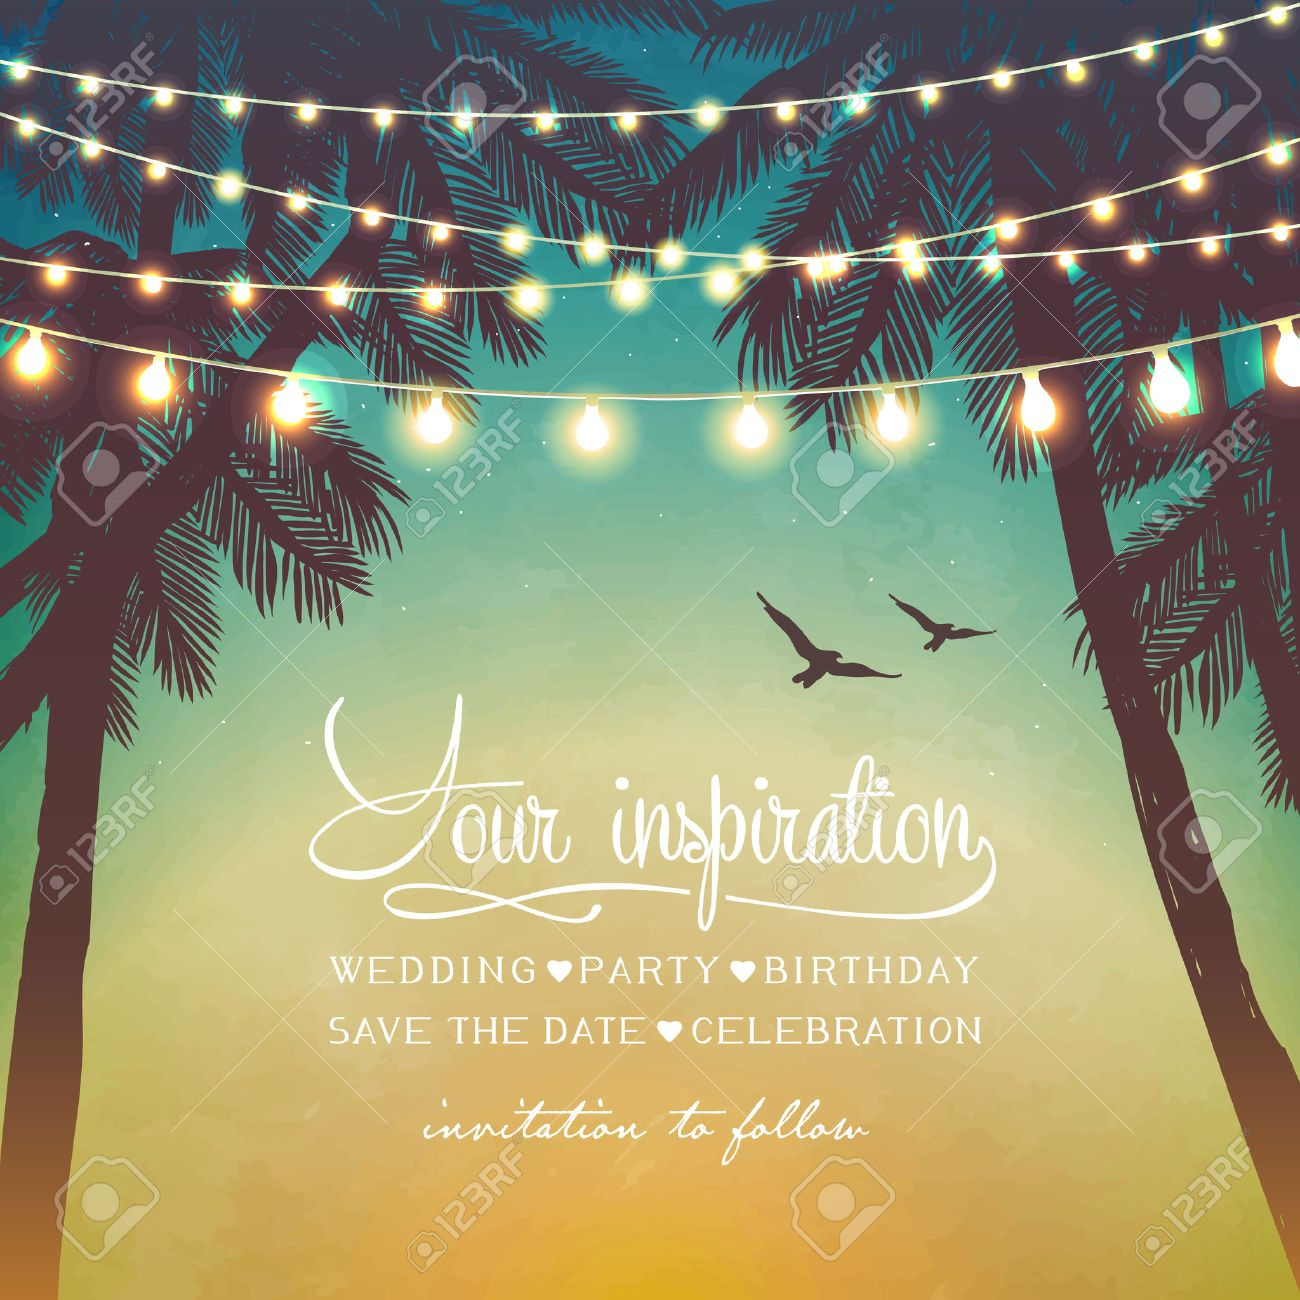 A Christmas Wedding Date.Hanging Decorative Holiday Lights For A Beach Party Inspiration